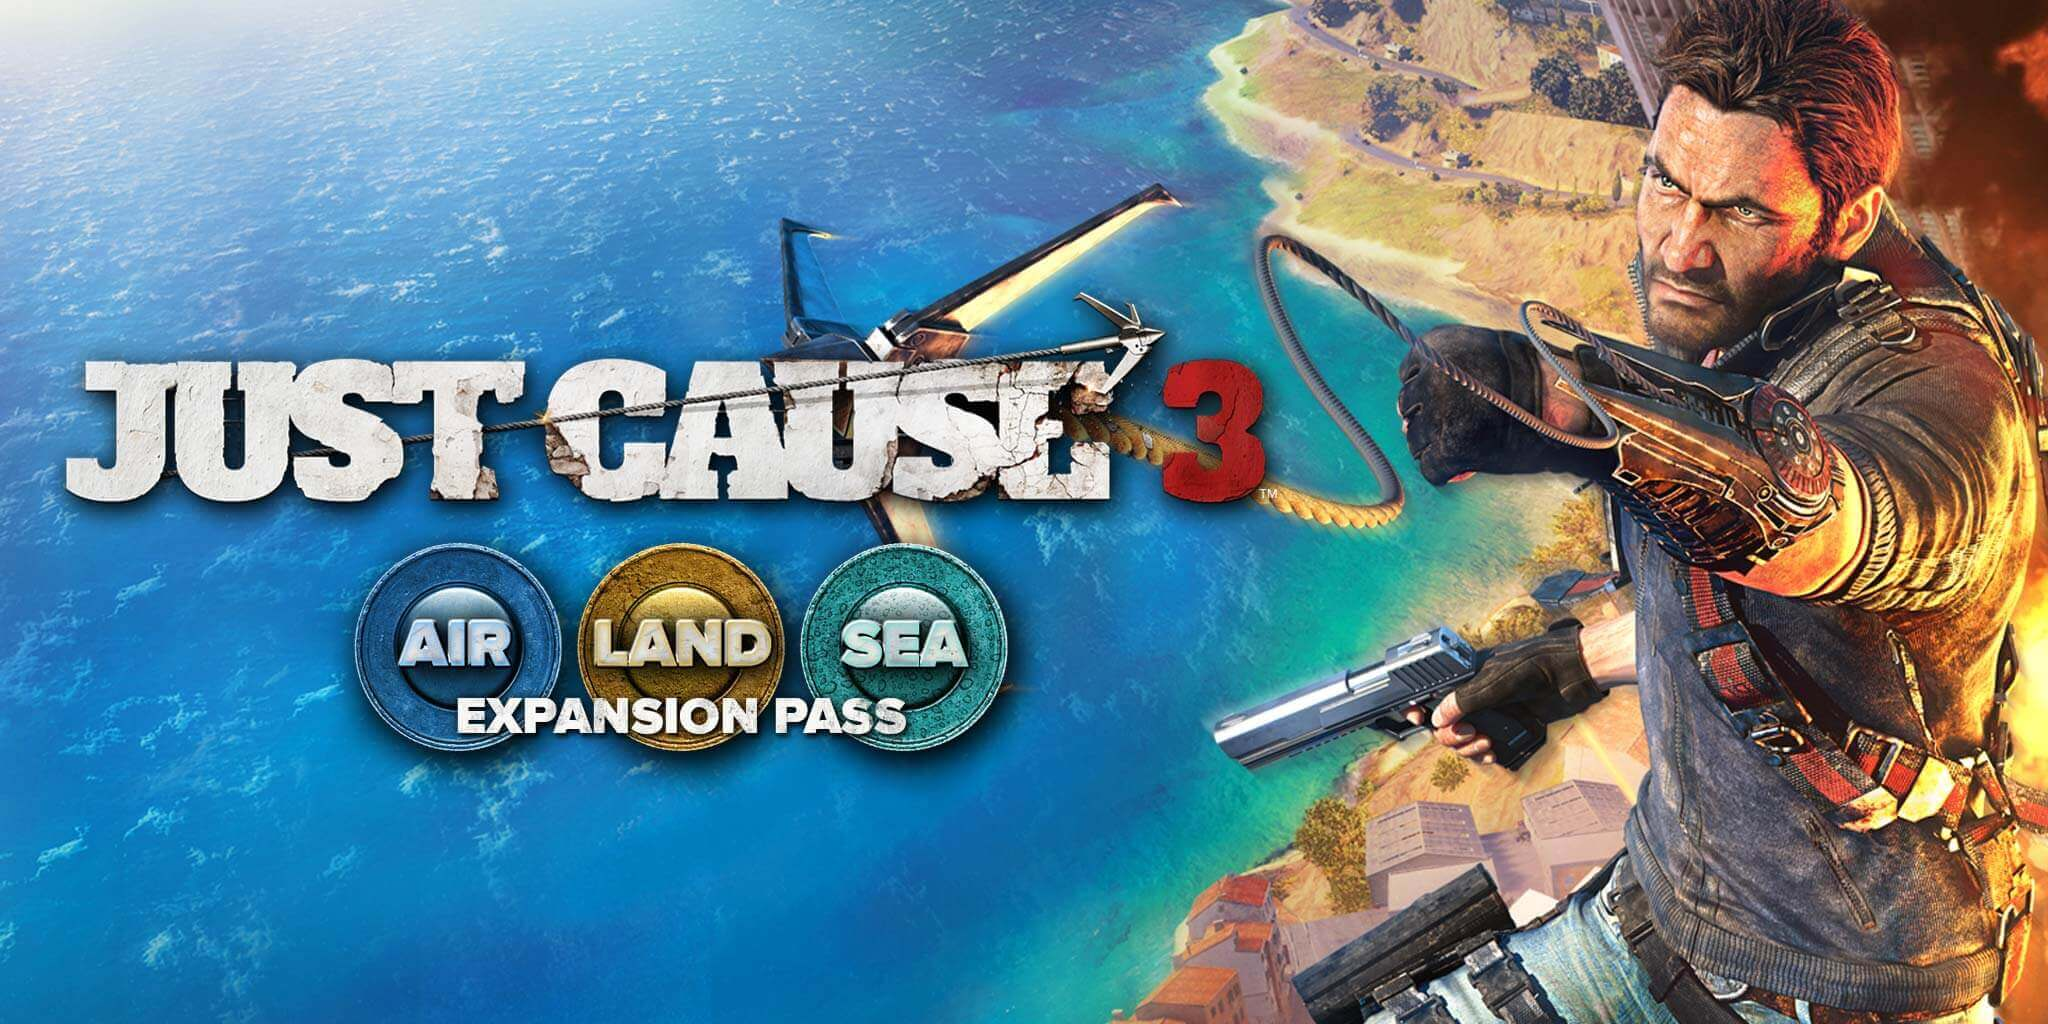 Just Cause 3 Sky Fortress DLC Update Fighter Jet Transformation